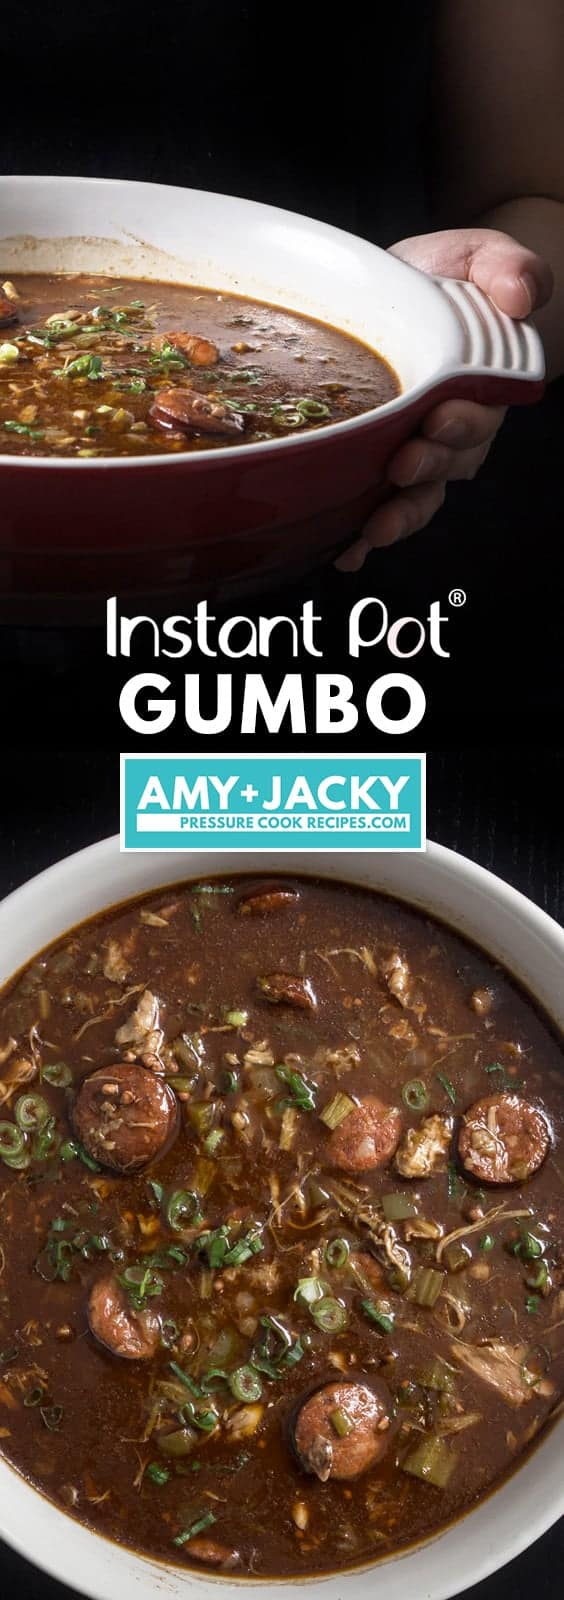 Instant Pot Gumbo Recipe (Pressure Cooker Gumbo): make mouthwatering Southern Louisiana pot of love packed with smoky-spicy Cajun, Creole flavors and rich aromas. Feed your crowd with this delicious party favorite - not just for Mardi Gras! #instantpot #instantpotrecipes #pressurecooker #gumbo #southernrecipes